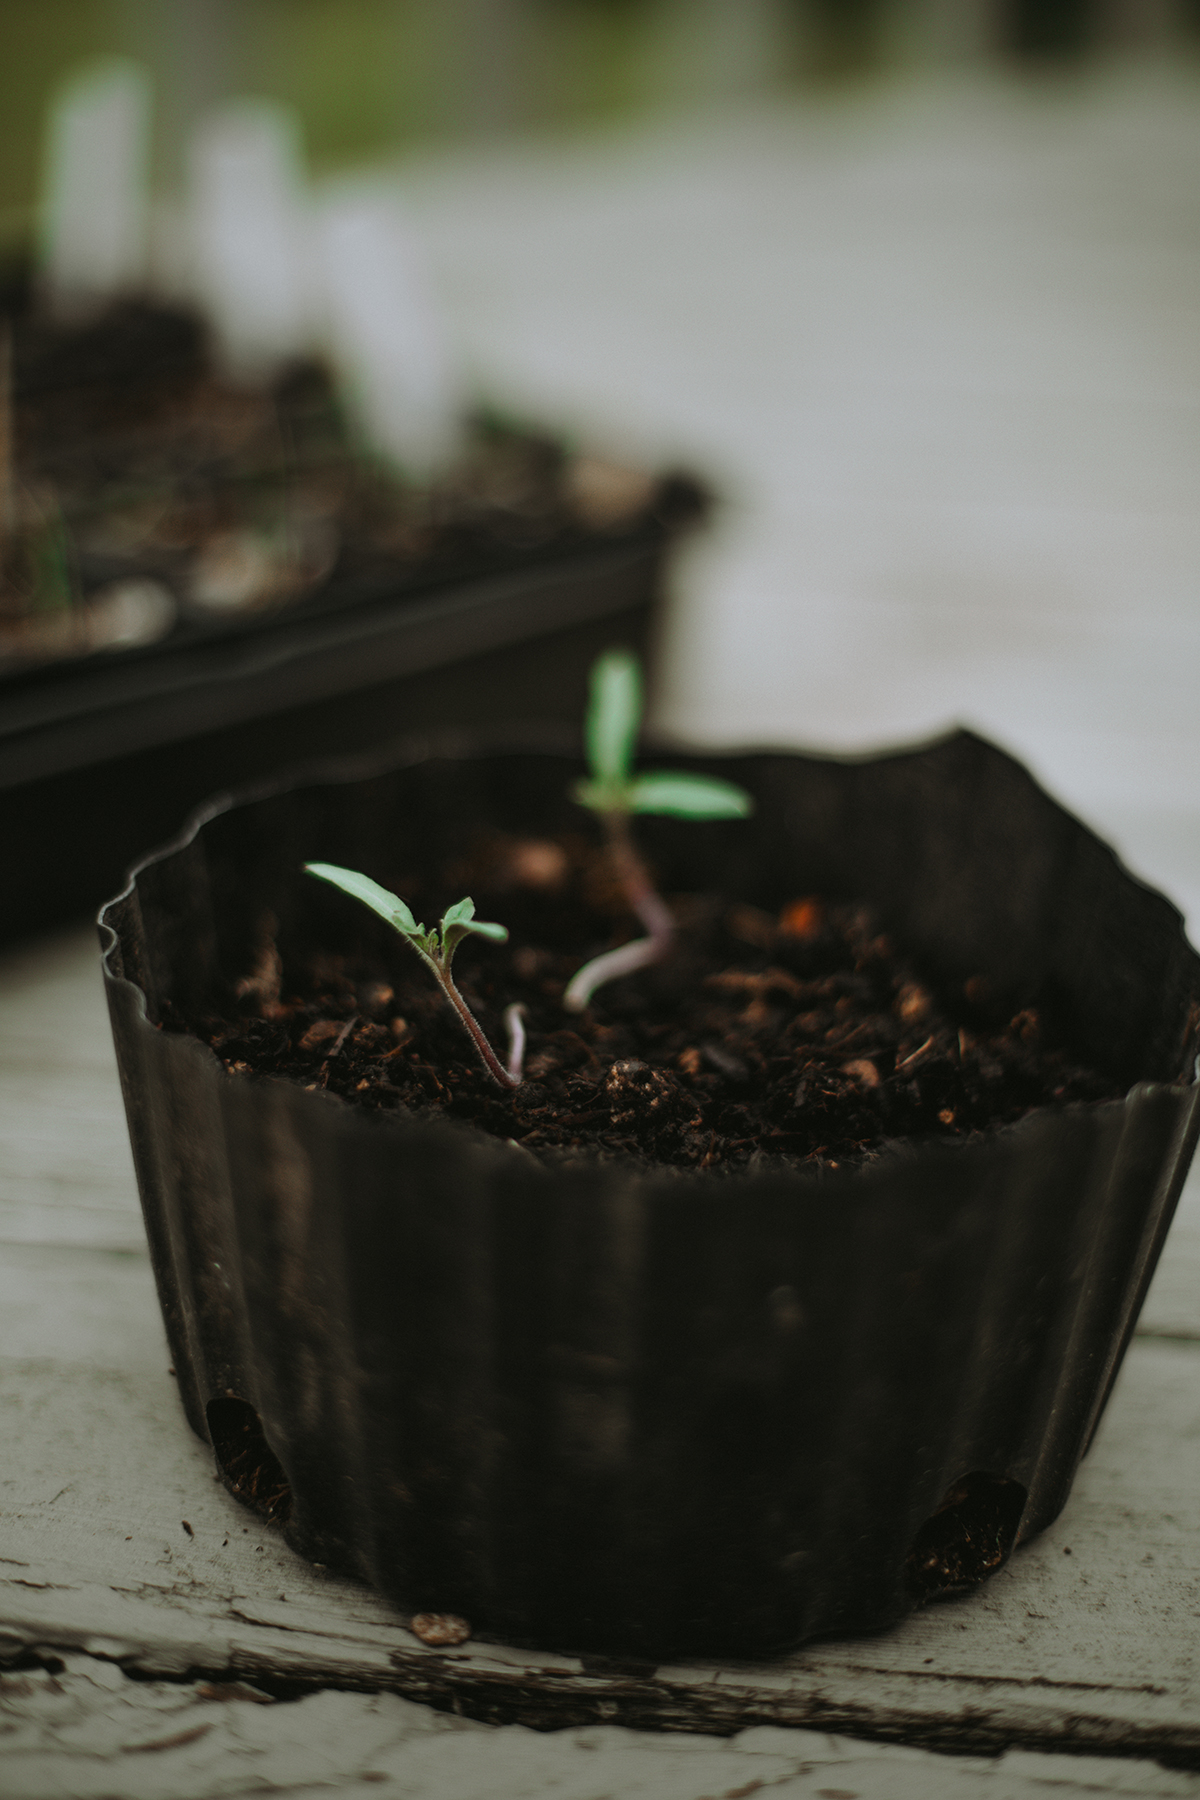 Tomato starts grow from a tiny planter.